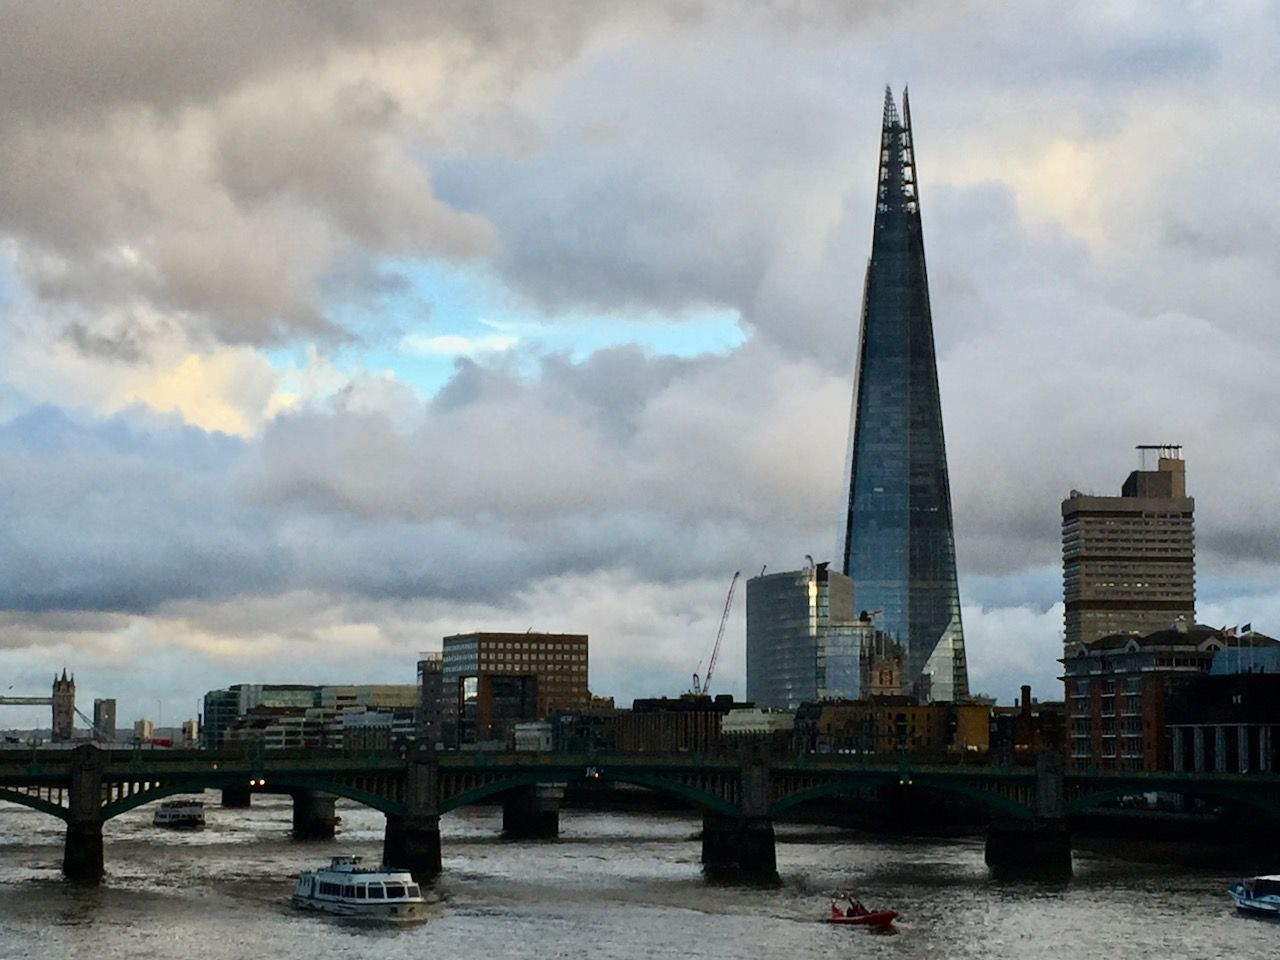 The almost empty Shard in London